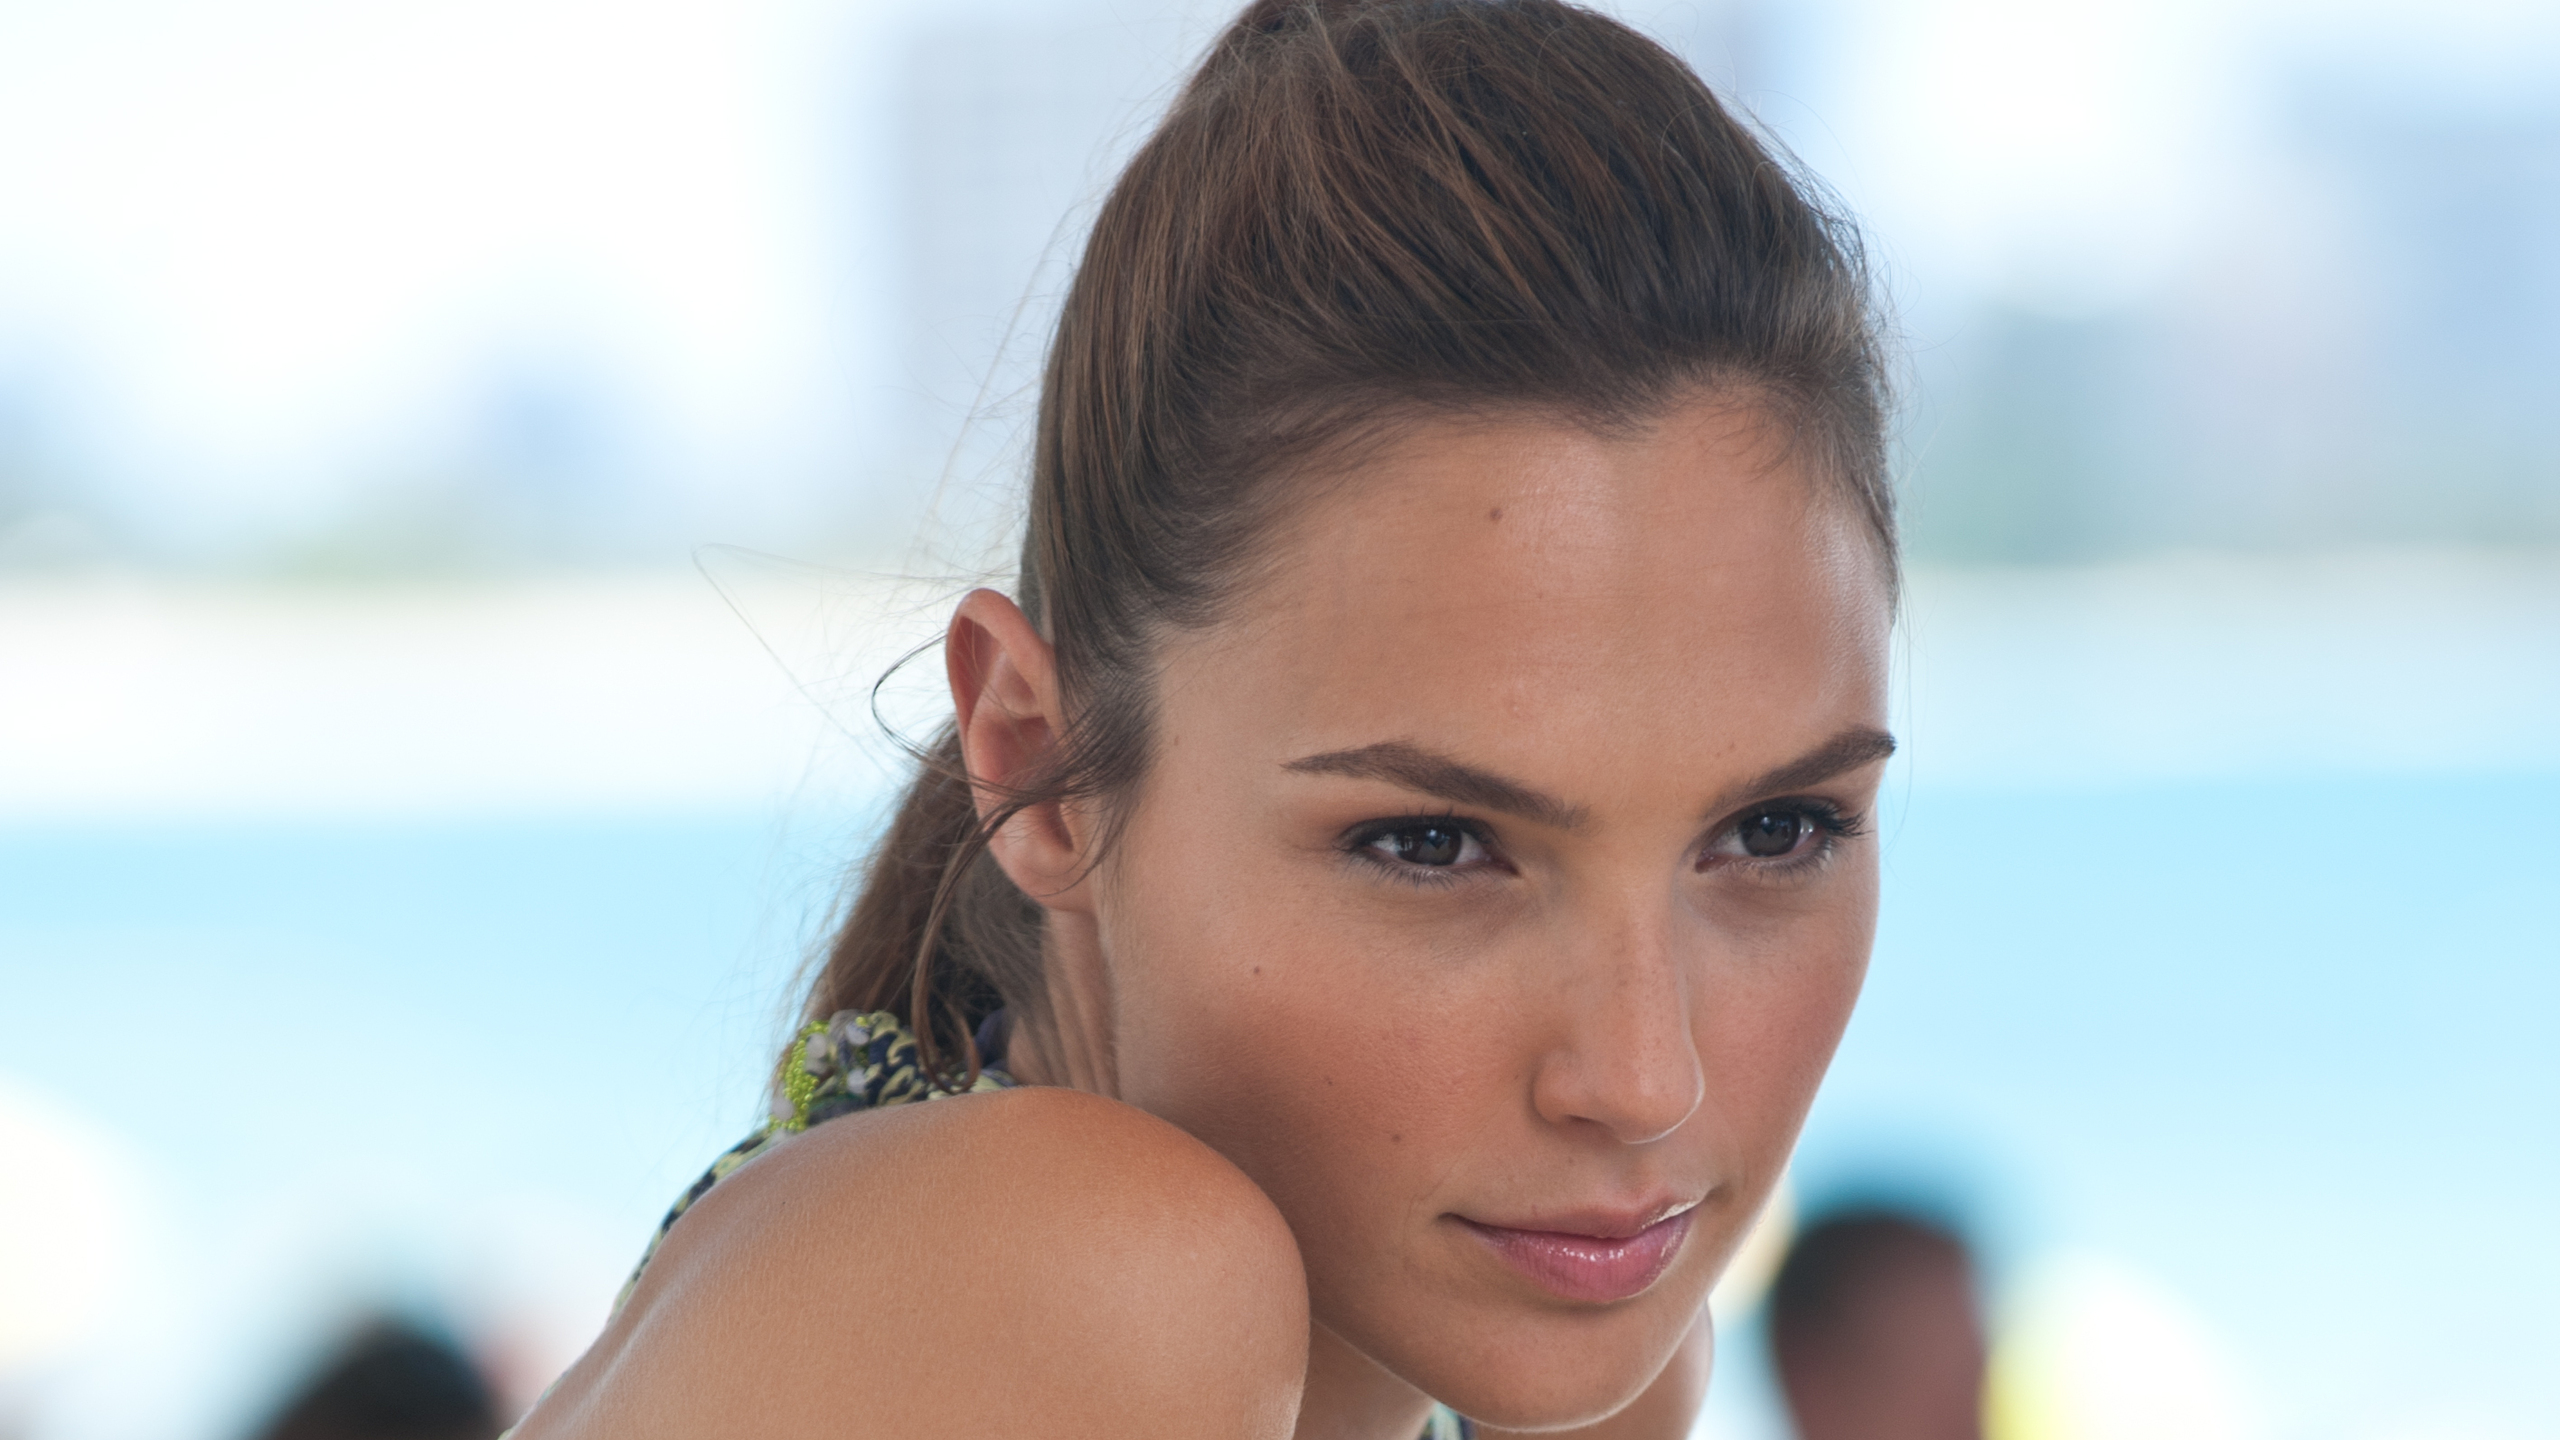 Gal gadot full hd wallpaper and background image 2560x1440 id615844 celebrity gal gadot wallpaper voltagebd Images